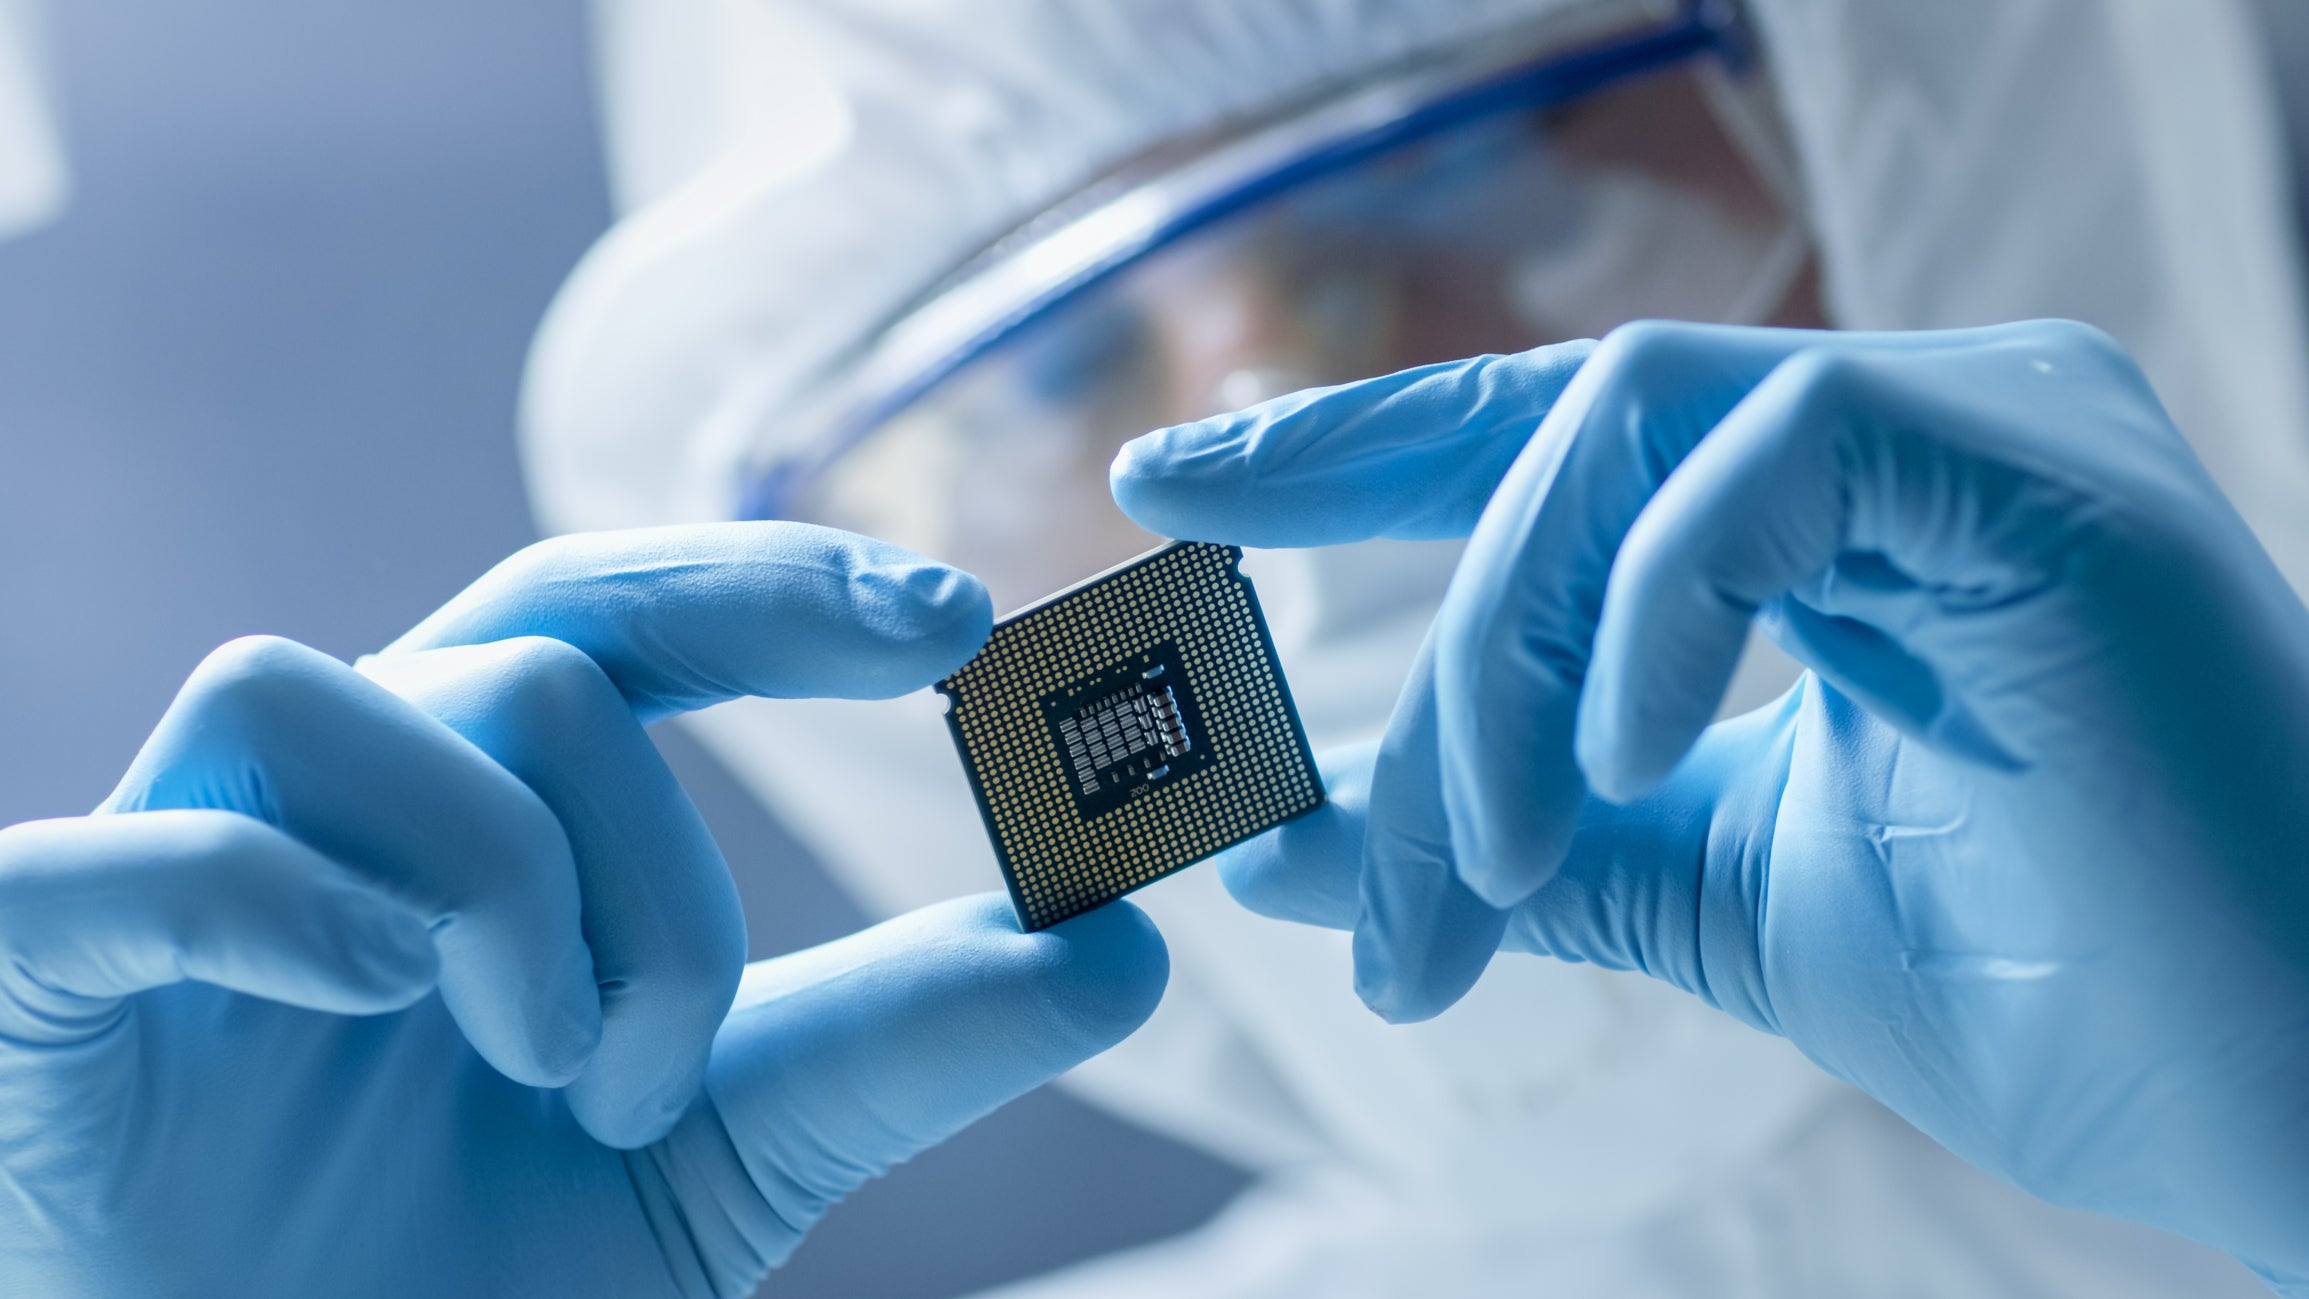 Man in clean room suit looking at semiconductor